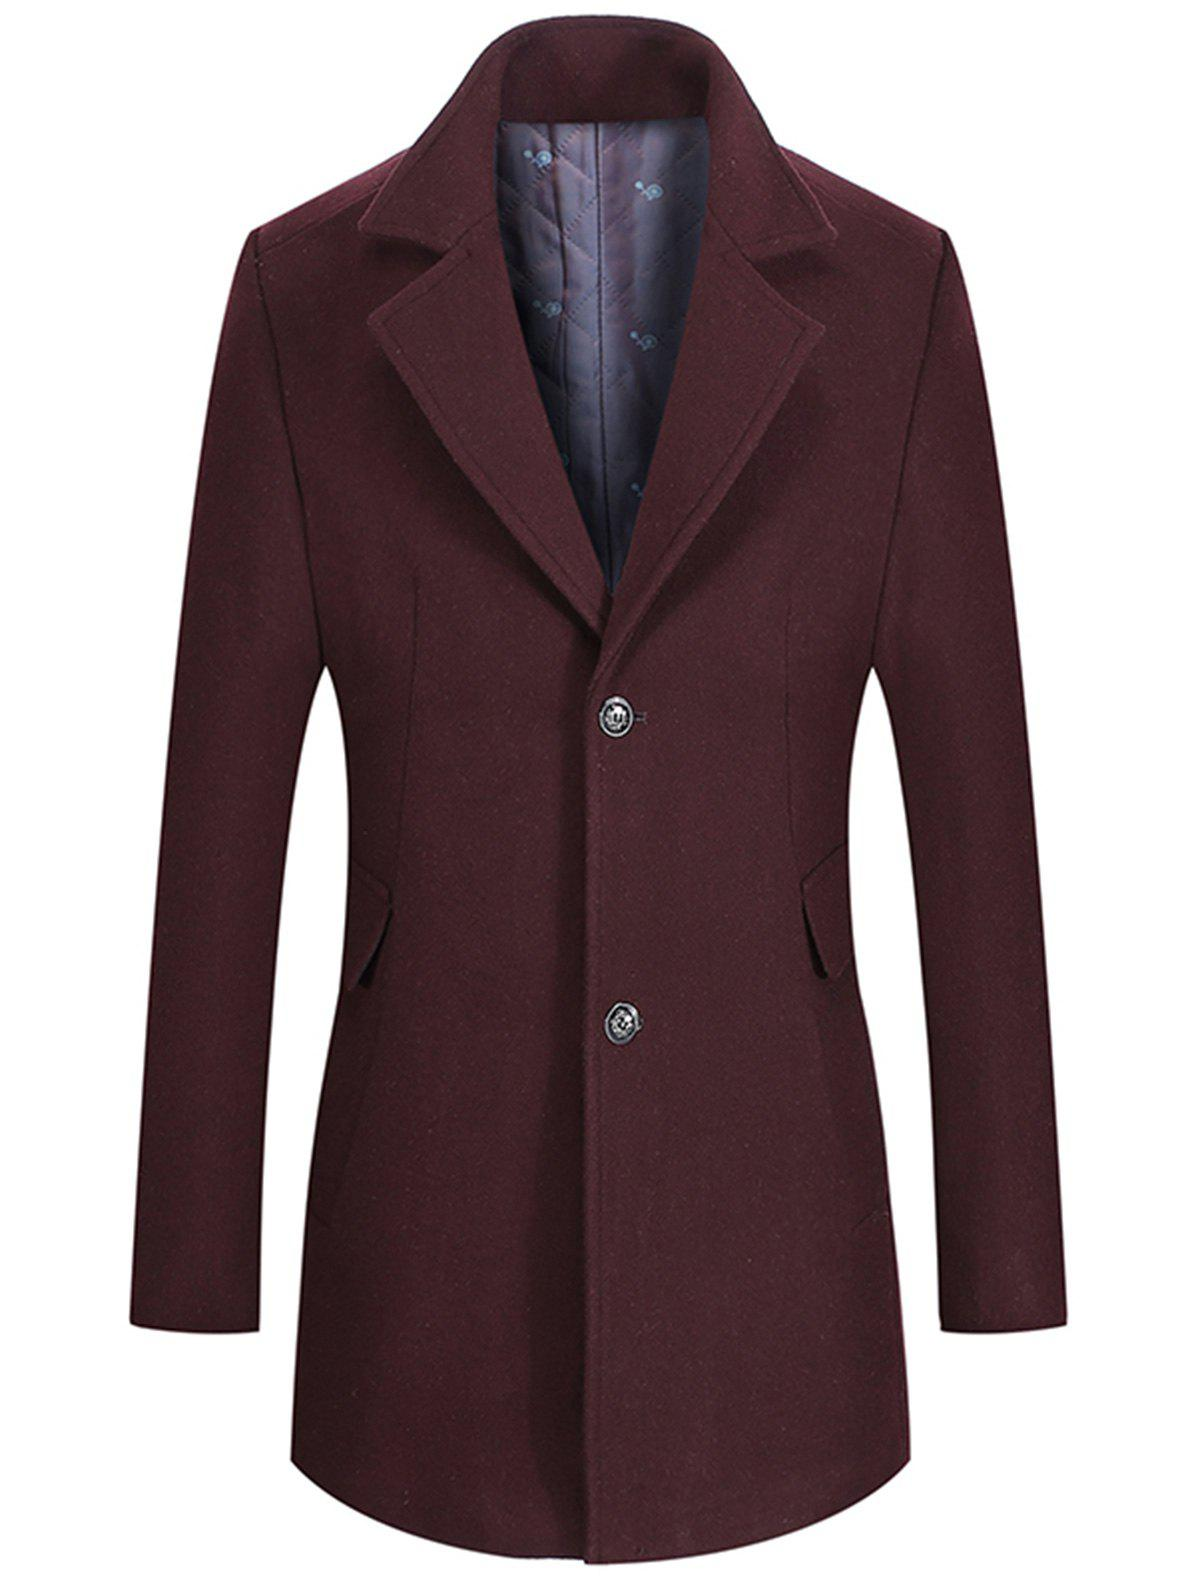 Discount Two Button Notch Lapel Wool Blend Coat